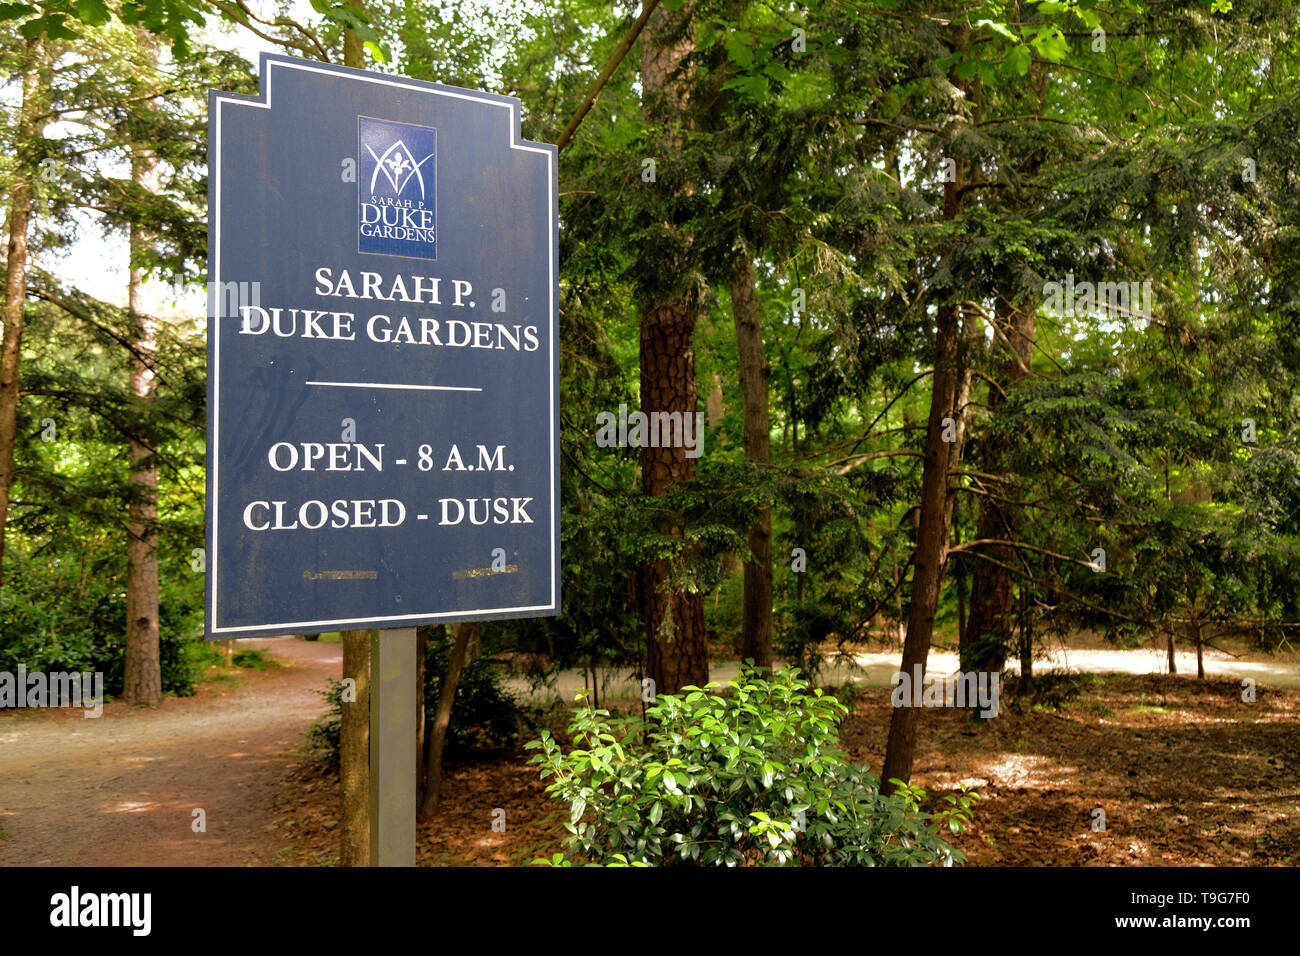 Sign at the Sarah P. Duke Gardens on the campus of Duke University in Durham, North Carolina, USA. - Stock Image